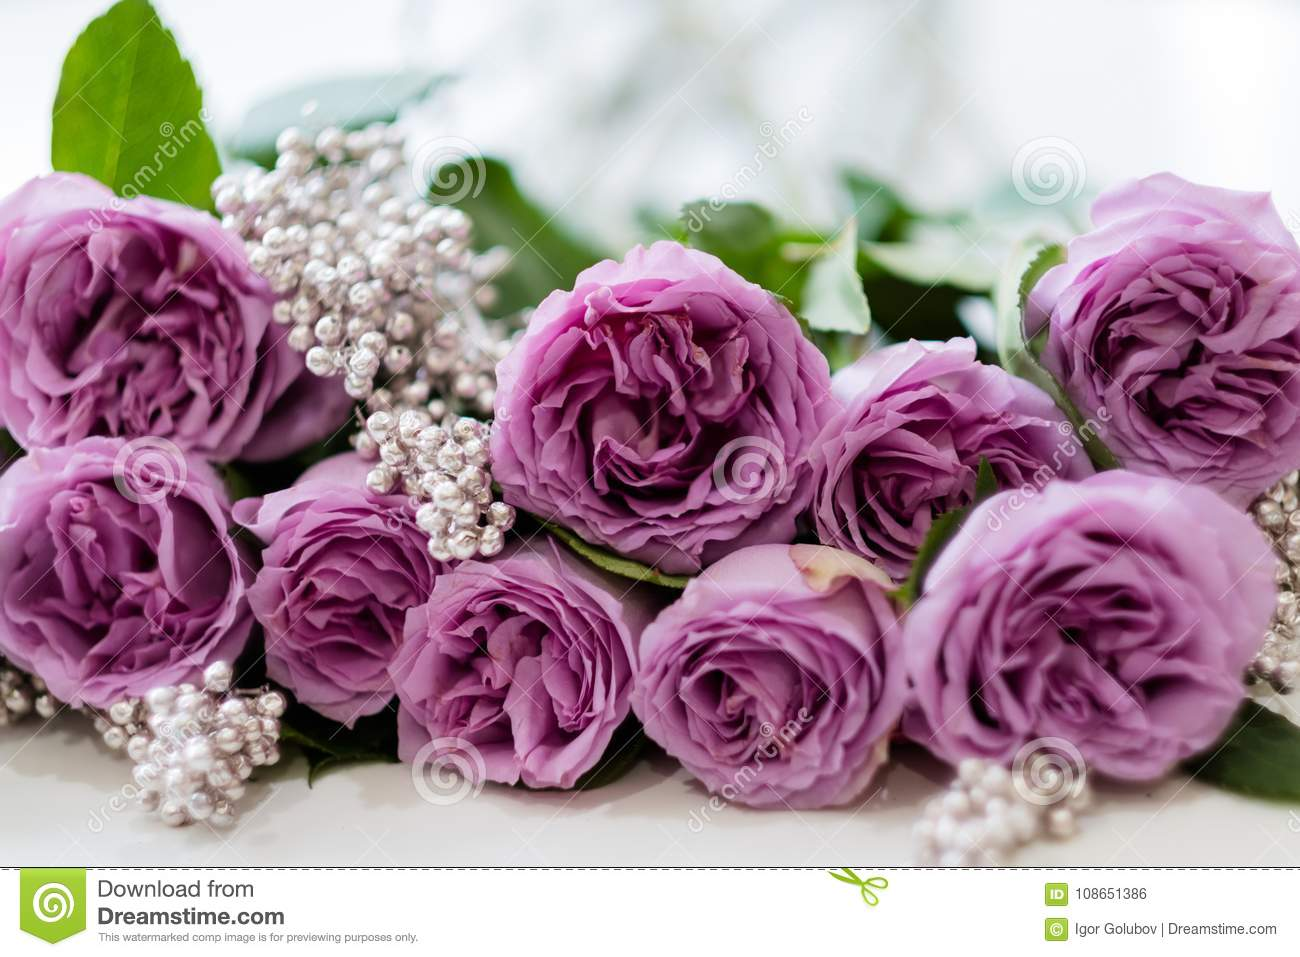 Pink Roses Anniversary Flower Arrangement Gift Stock Photo Image Of Silver Decoration 108651386